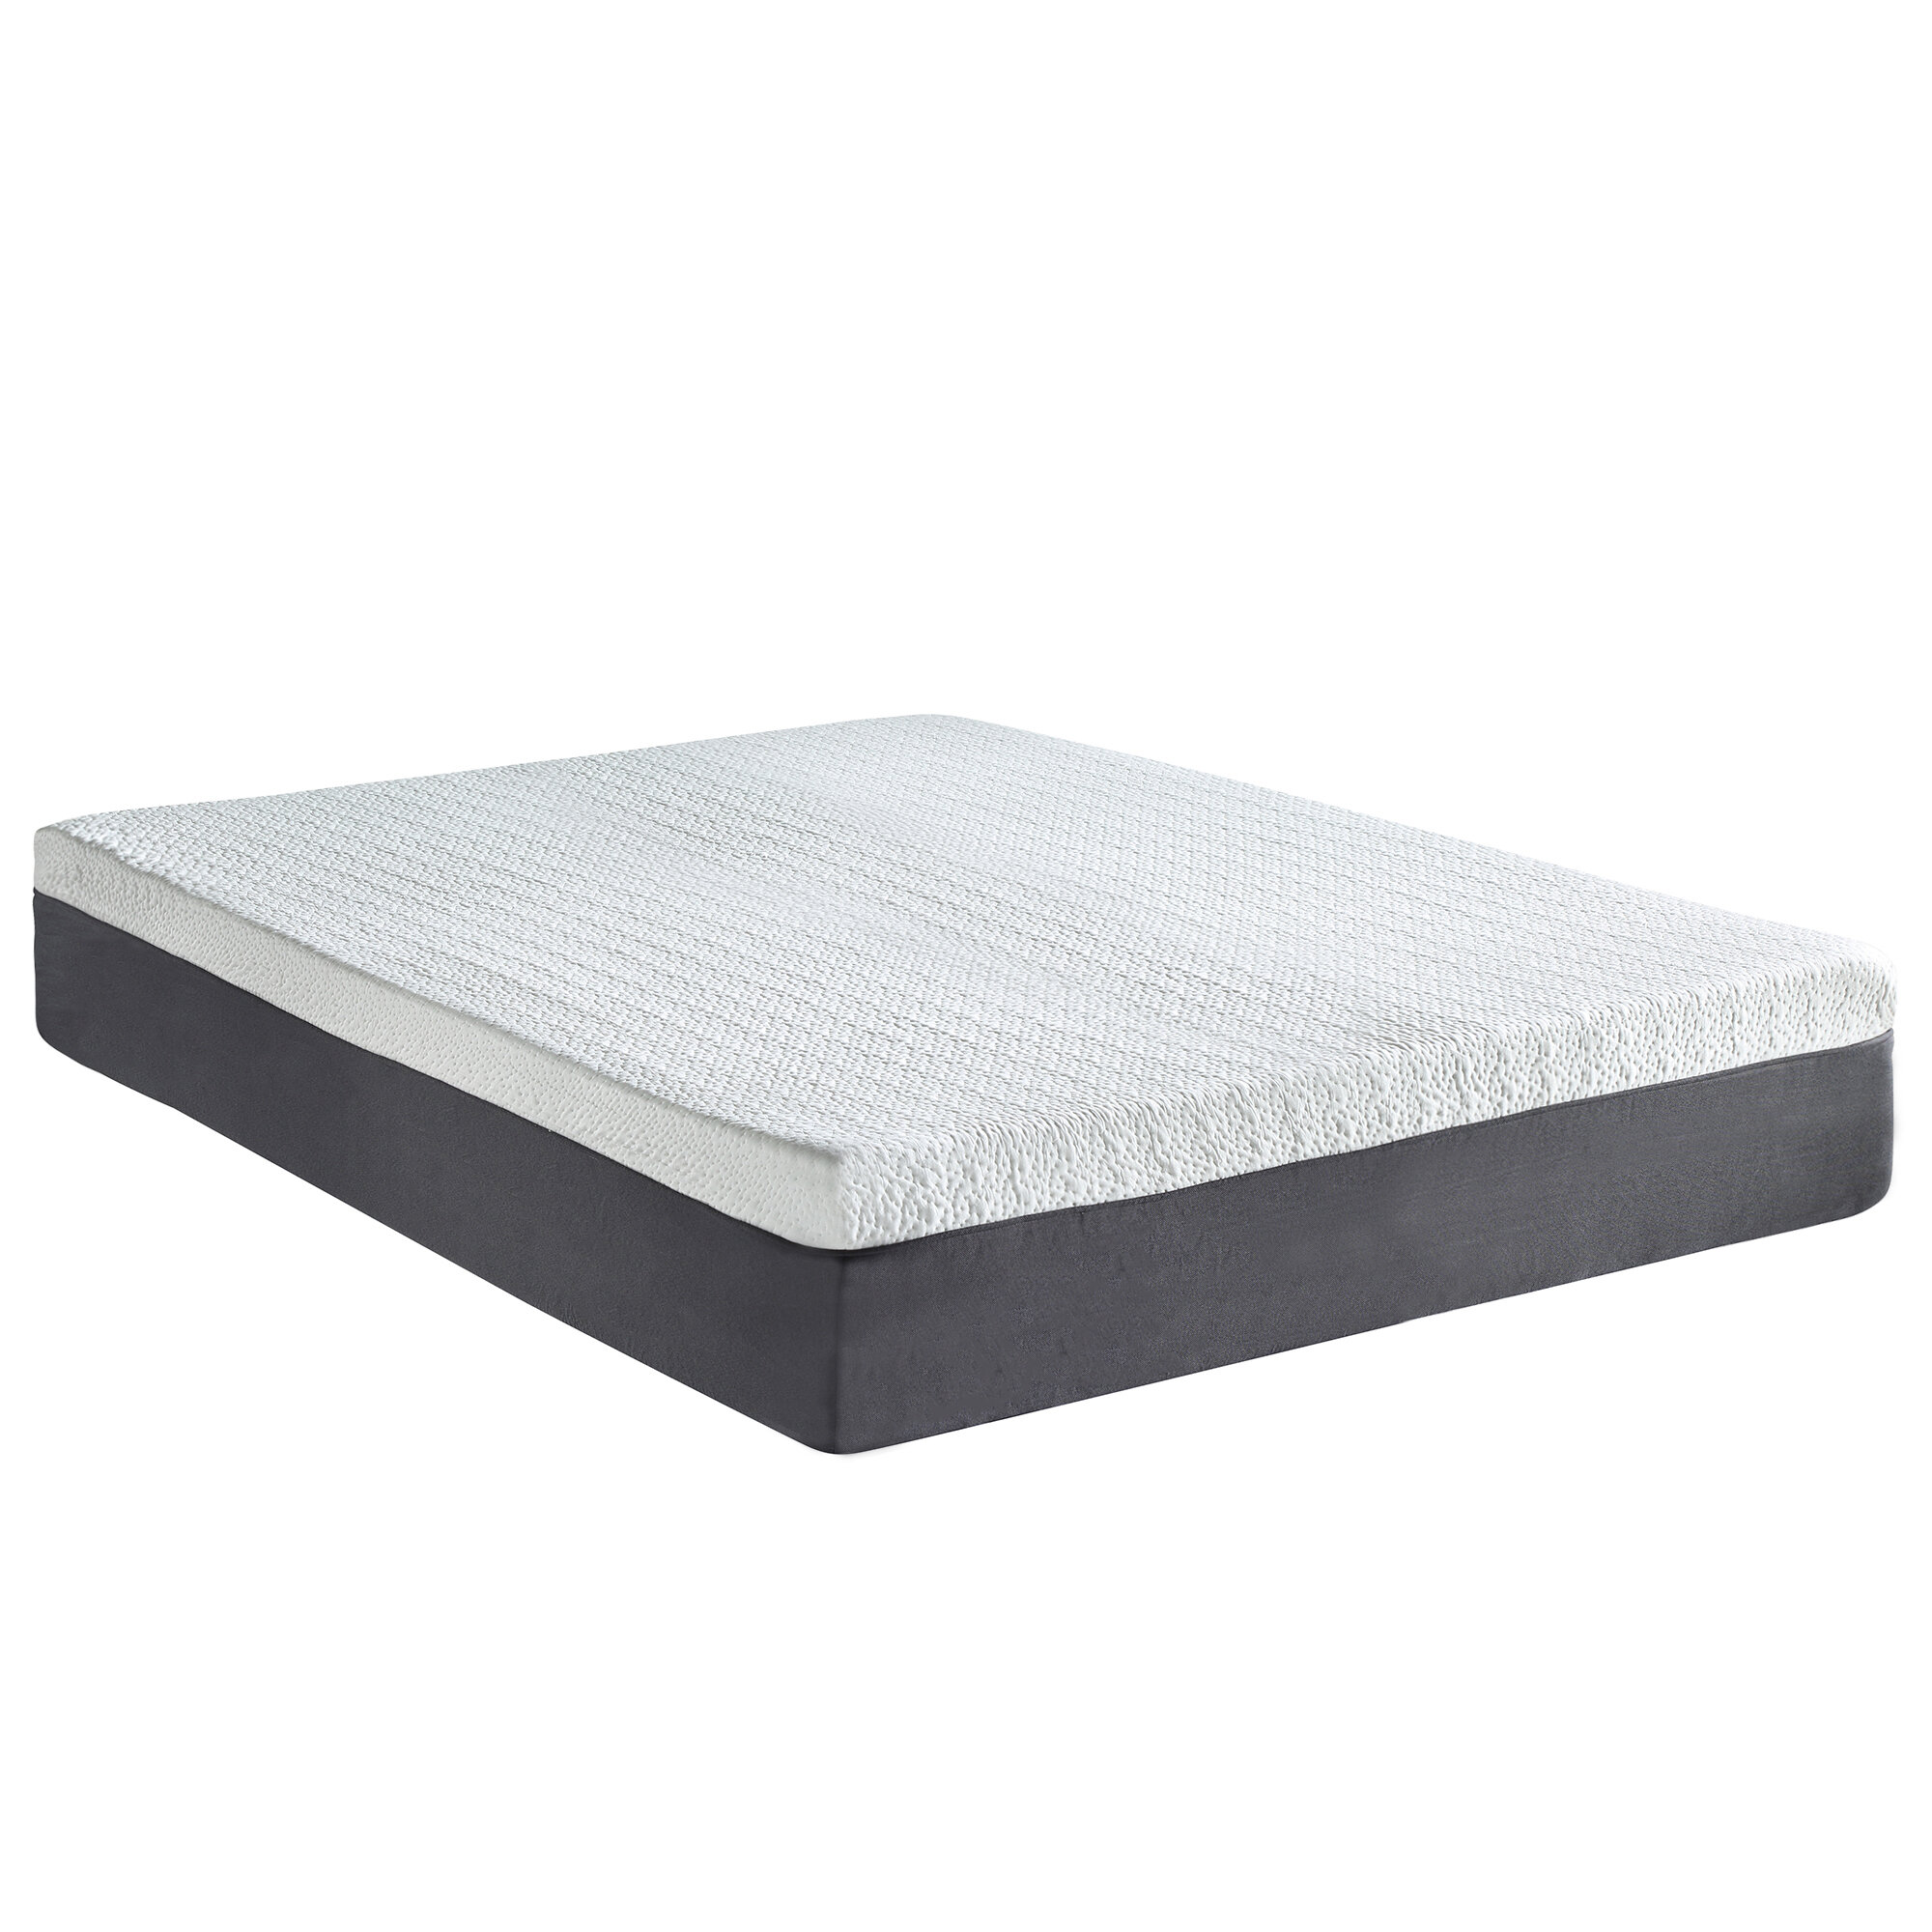 Ishaan 12 Medium Memory Foam Mattress Reviews Joss Main